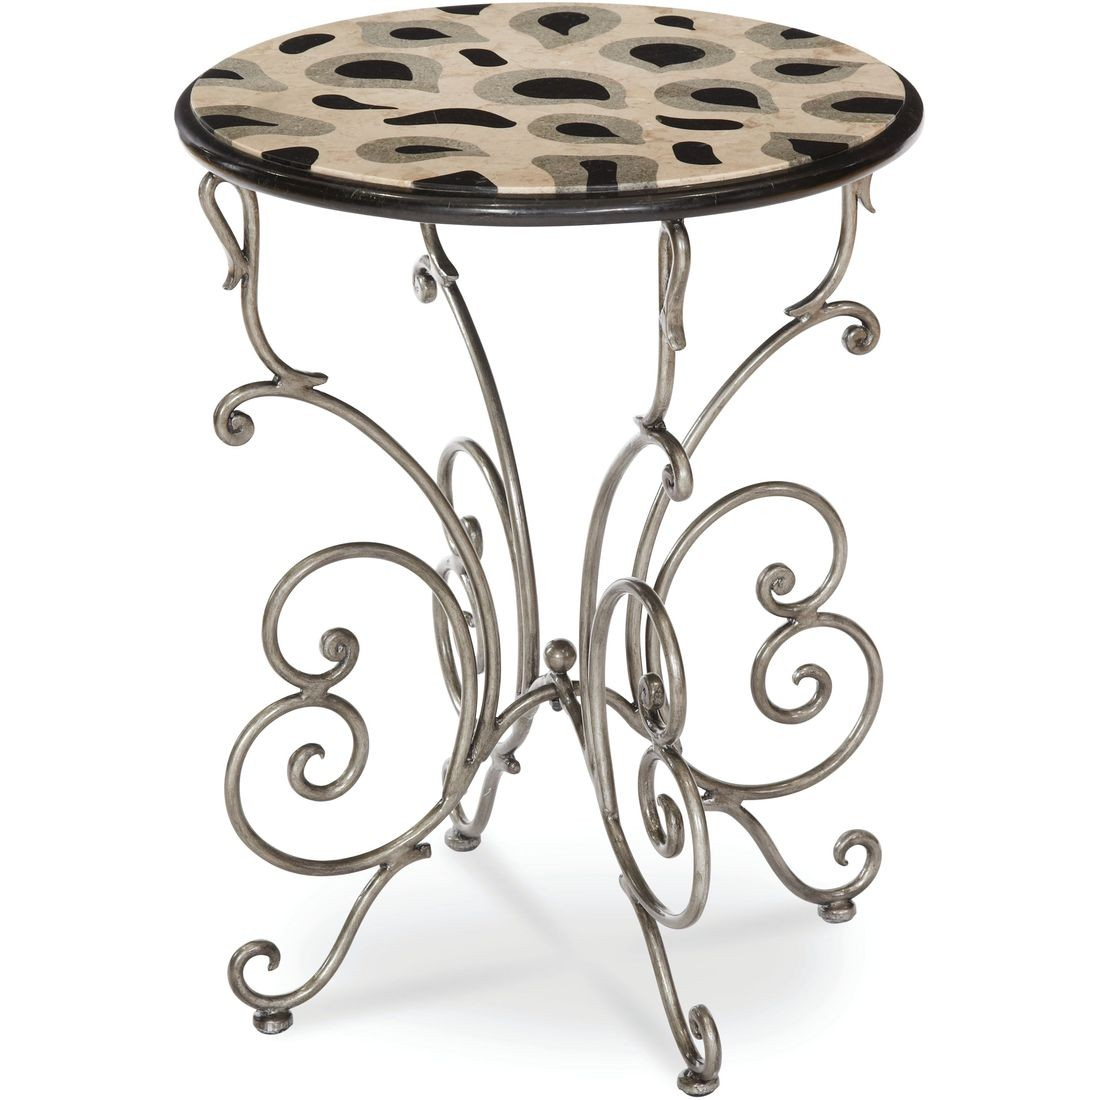 aico discoveries butterfly accent table best quality qualityfurniture aic act clgn glass zoom decorative wine rack clearance deck furniture plastic patio and chairs target